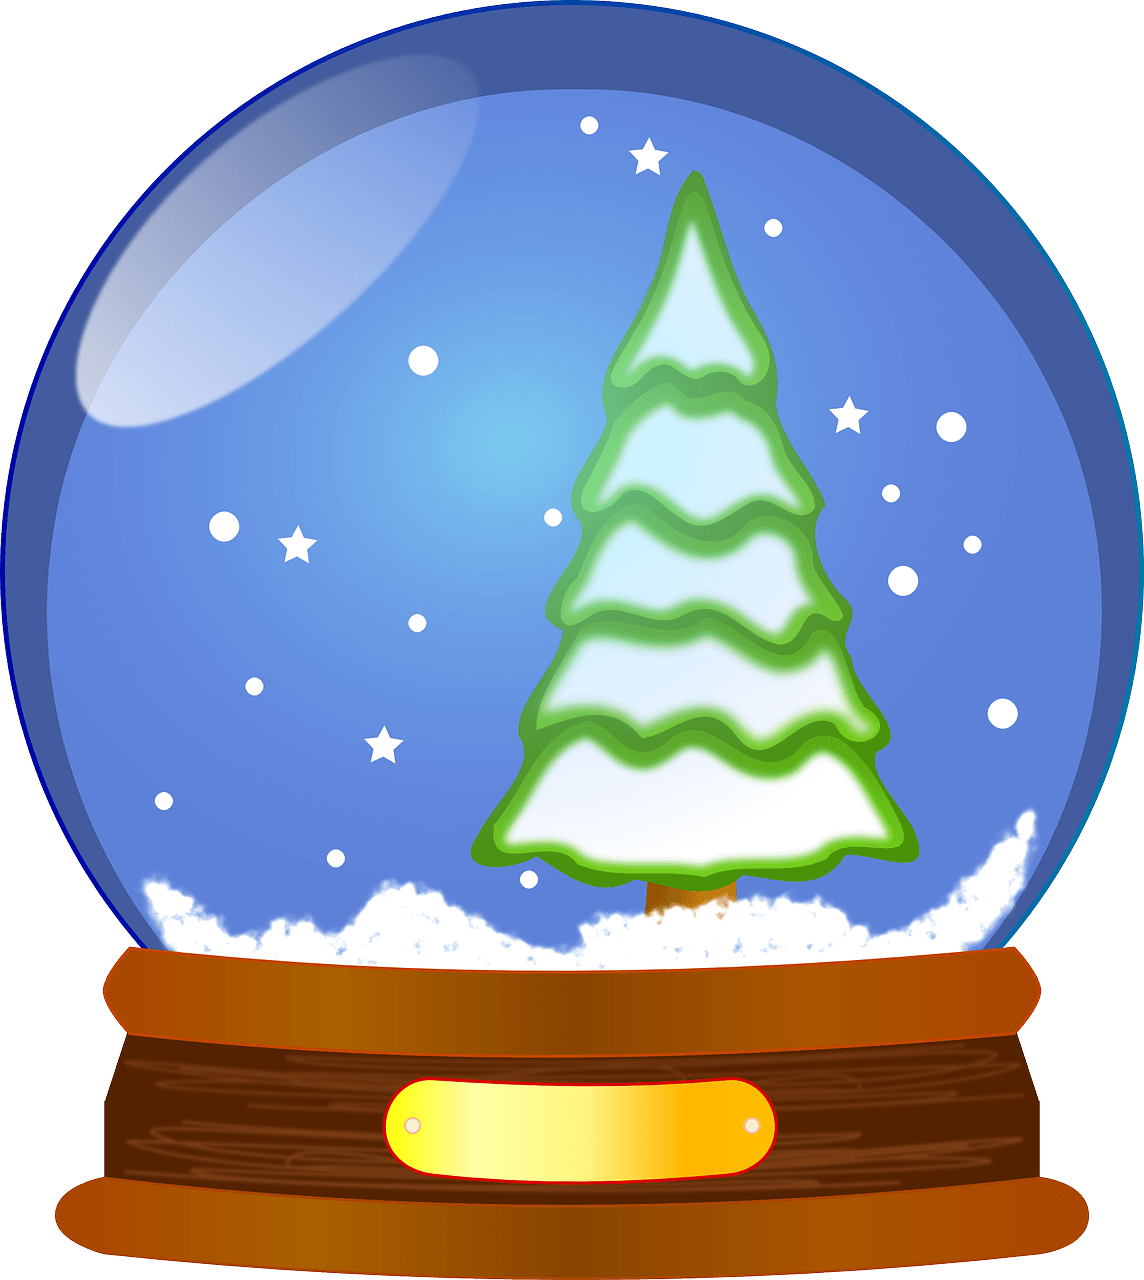 Snow Globe Wallpaper